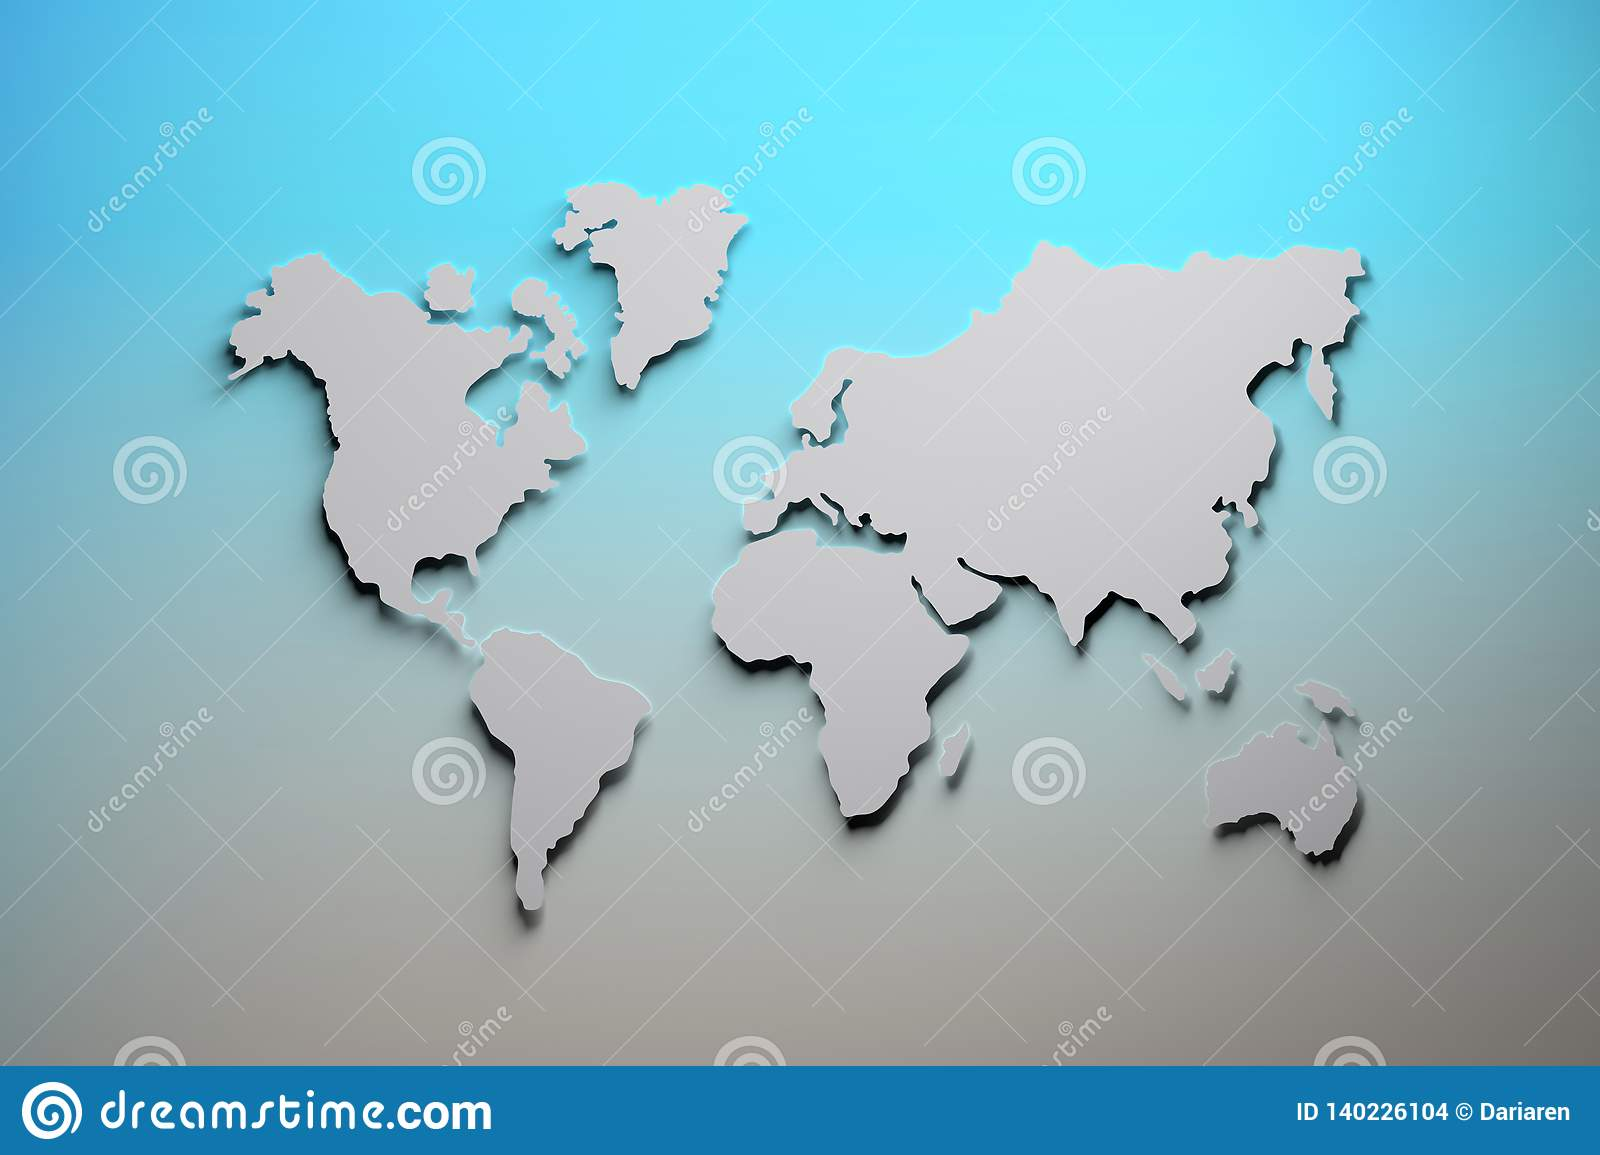 World Map In Blue And Gray Colors Stock Illustration Illustration